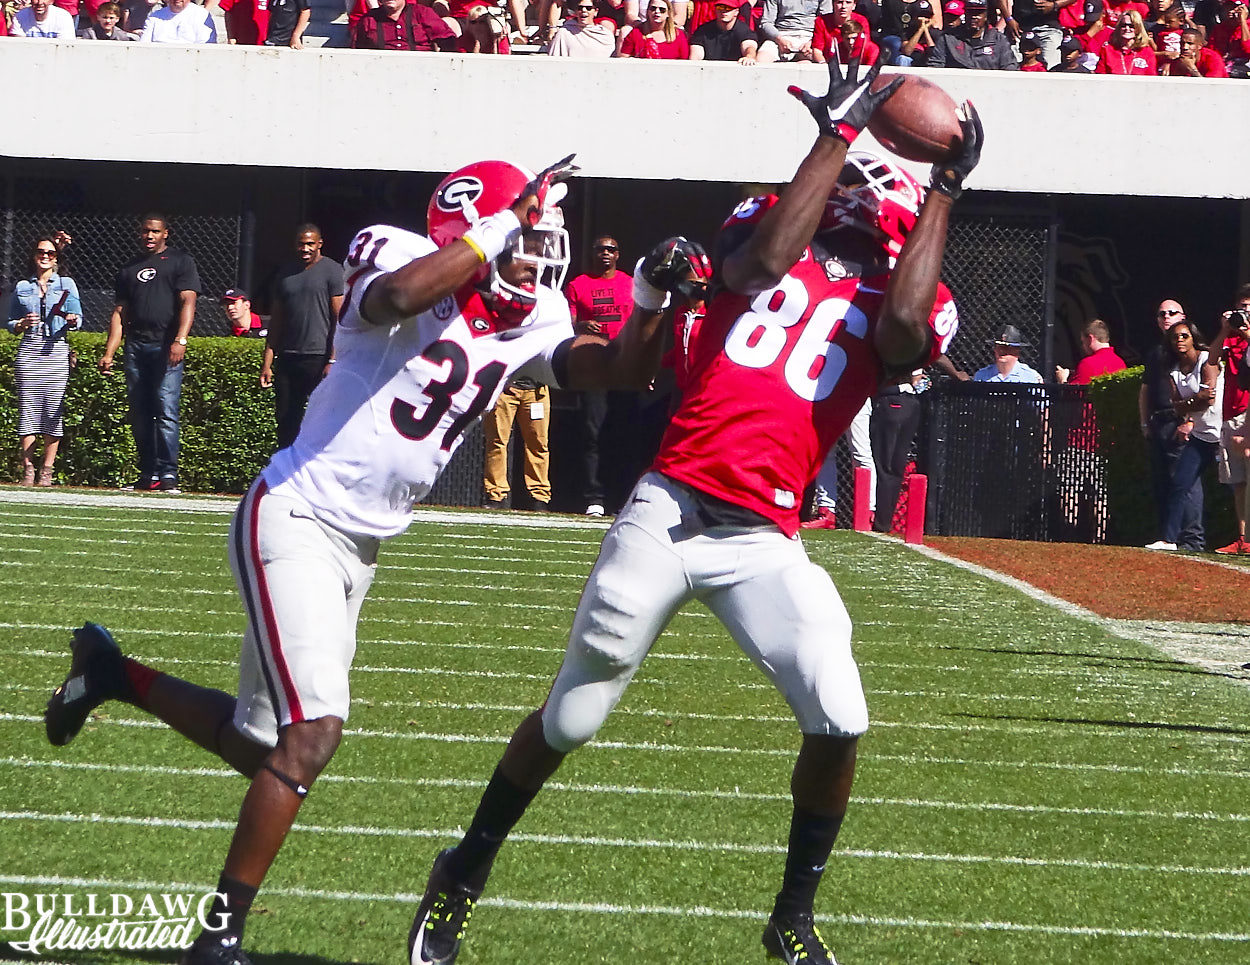 Riley Ridley (86) halls in the pass as Shattle Fenteng (31) defends